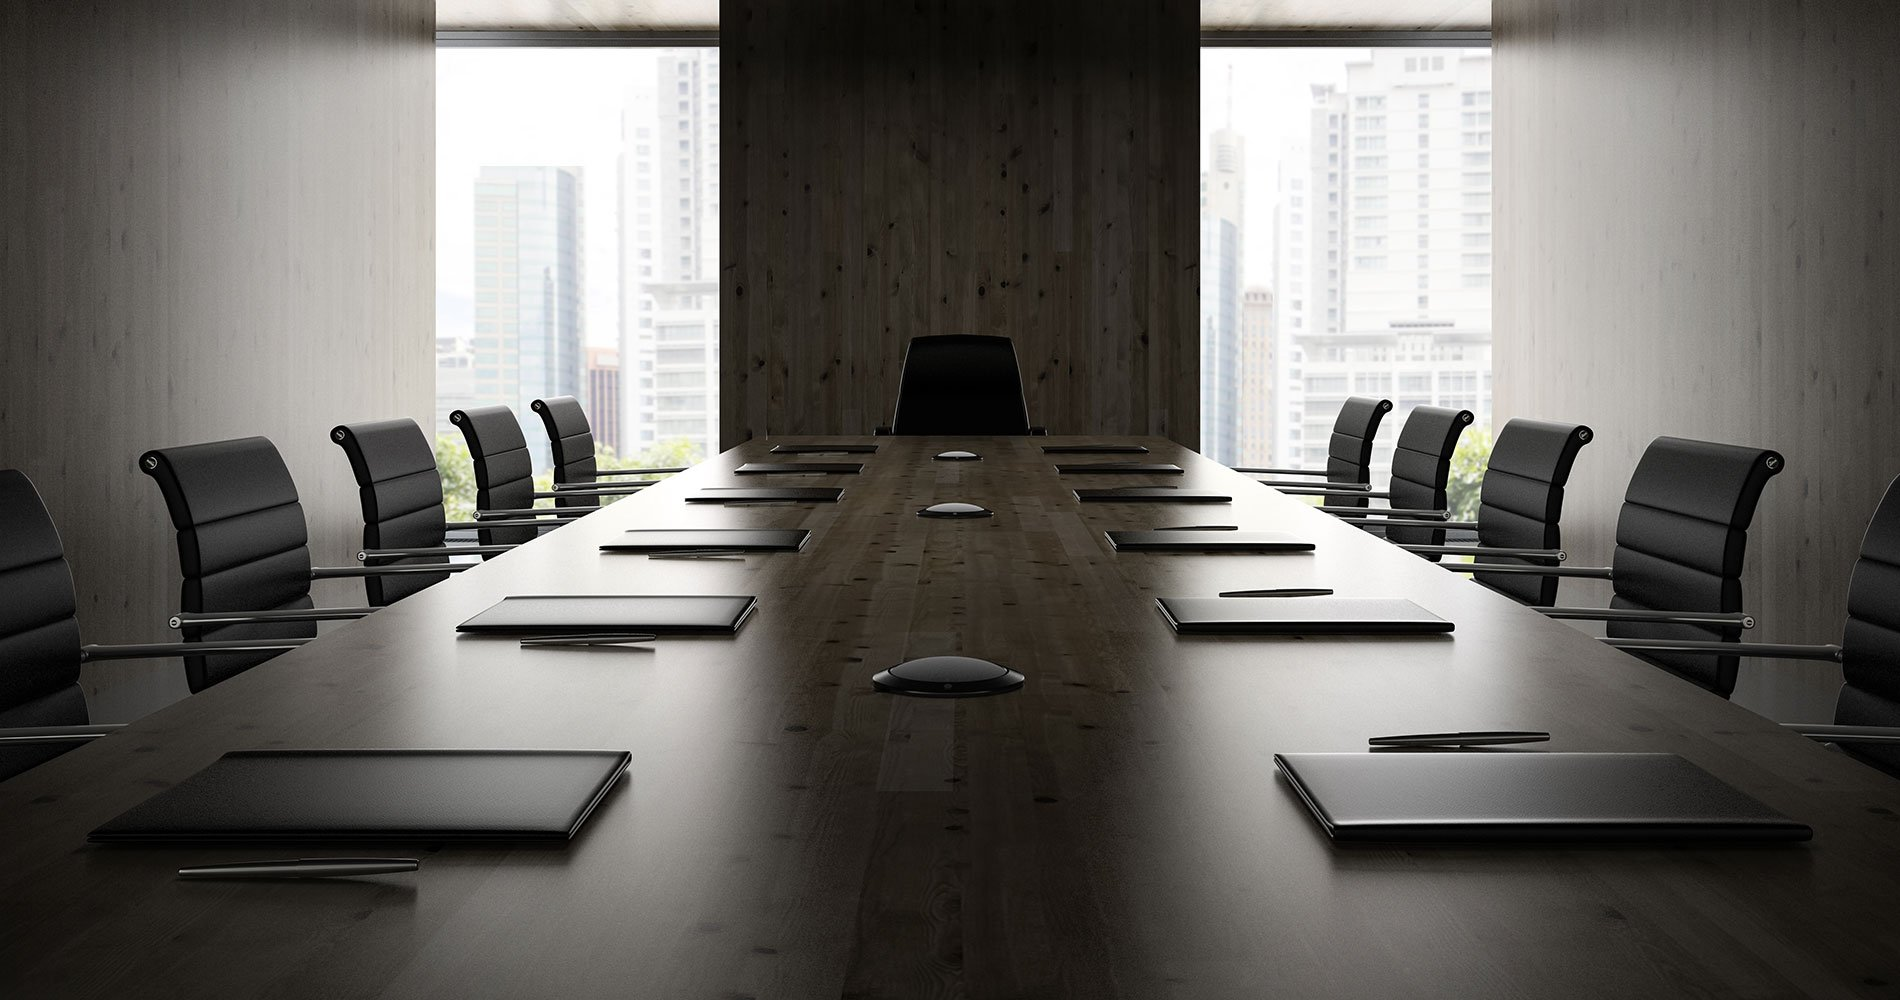 Boardroom Technology - For Meetings With Impact